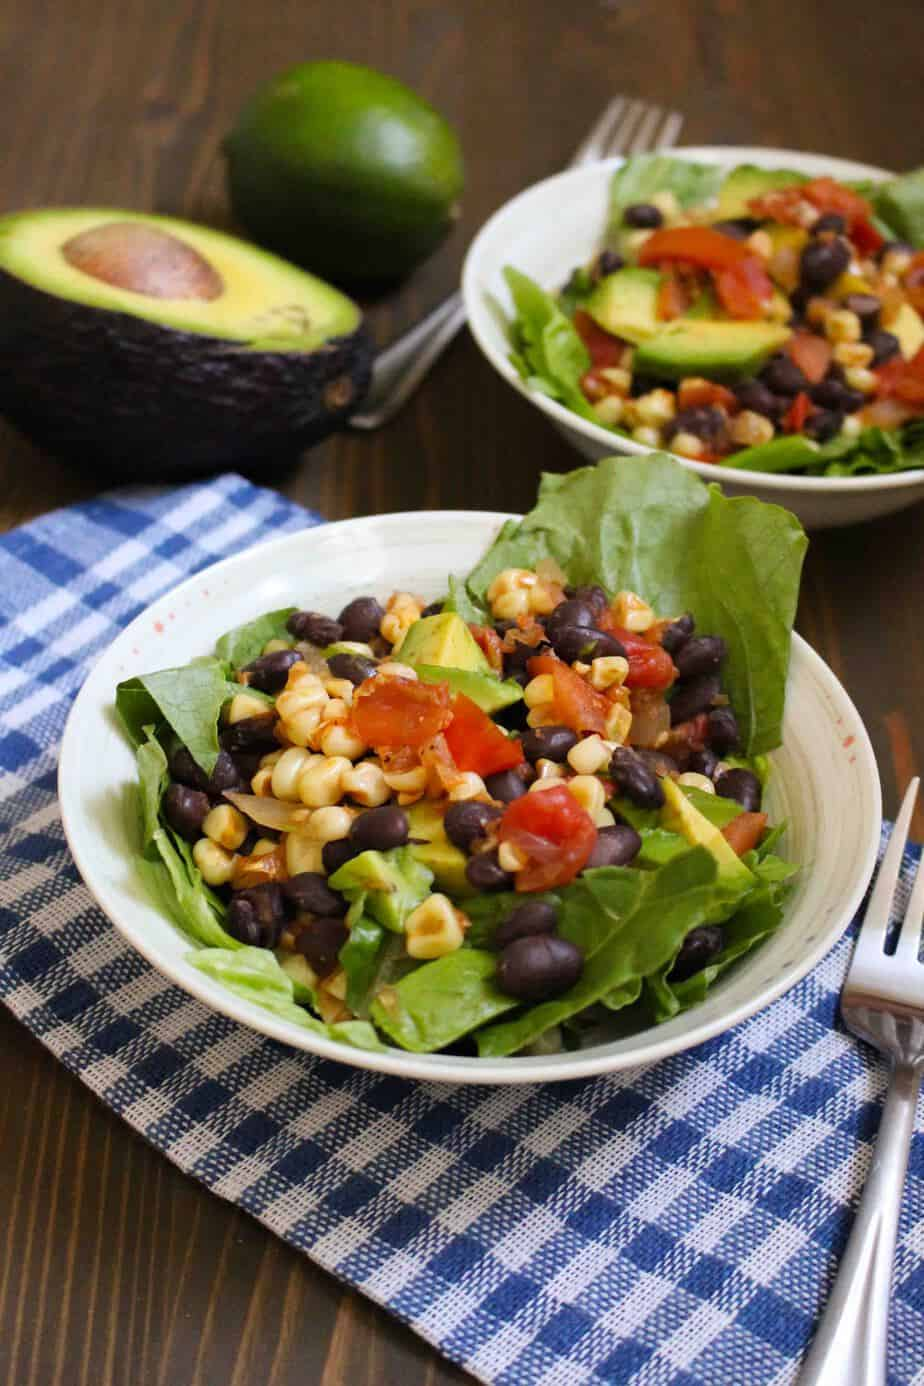 Super Easy Pan Roasted Corn and Tomato Salad with Avocado | Frugal Nutrition